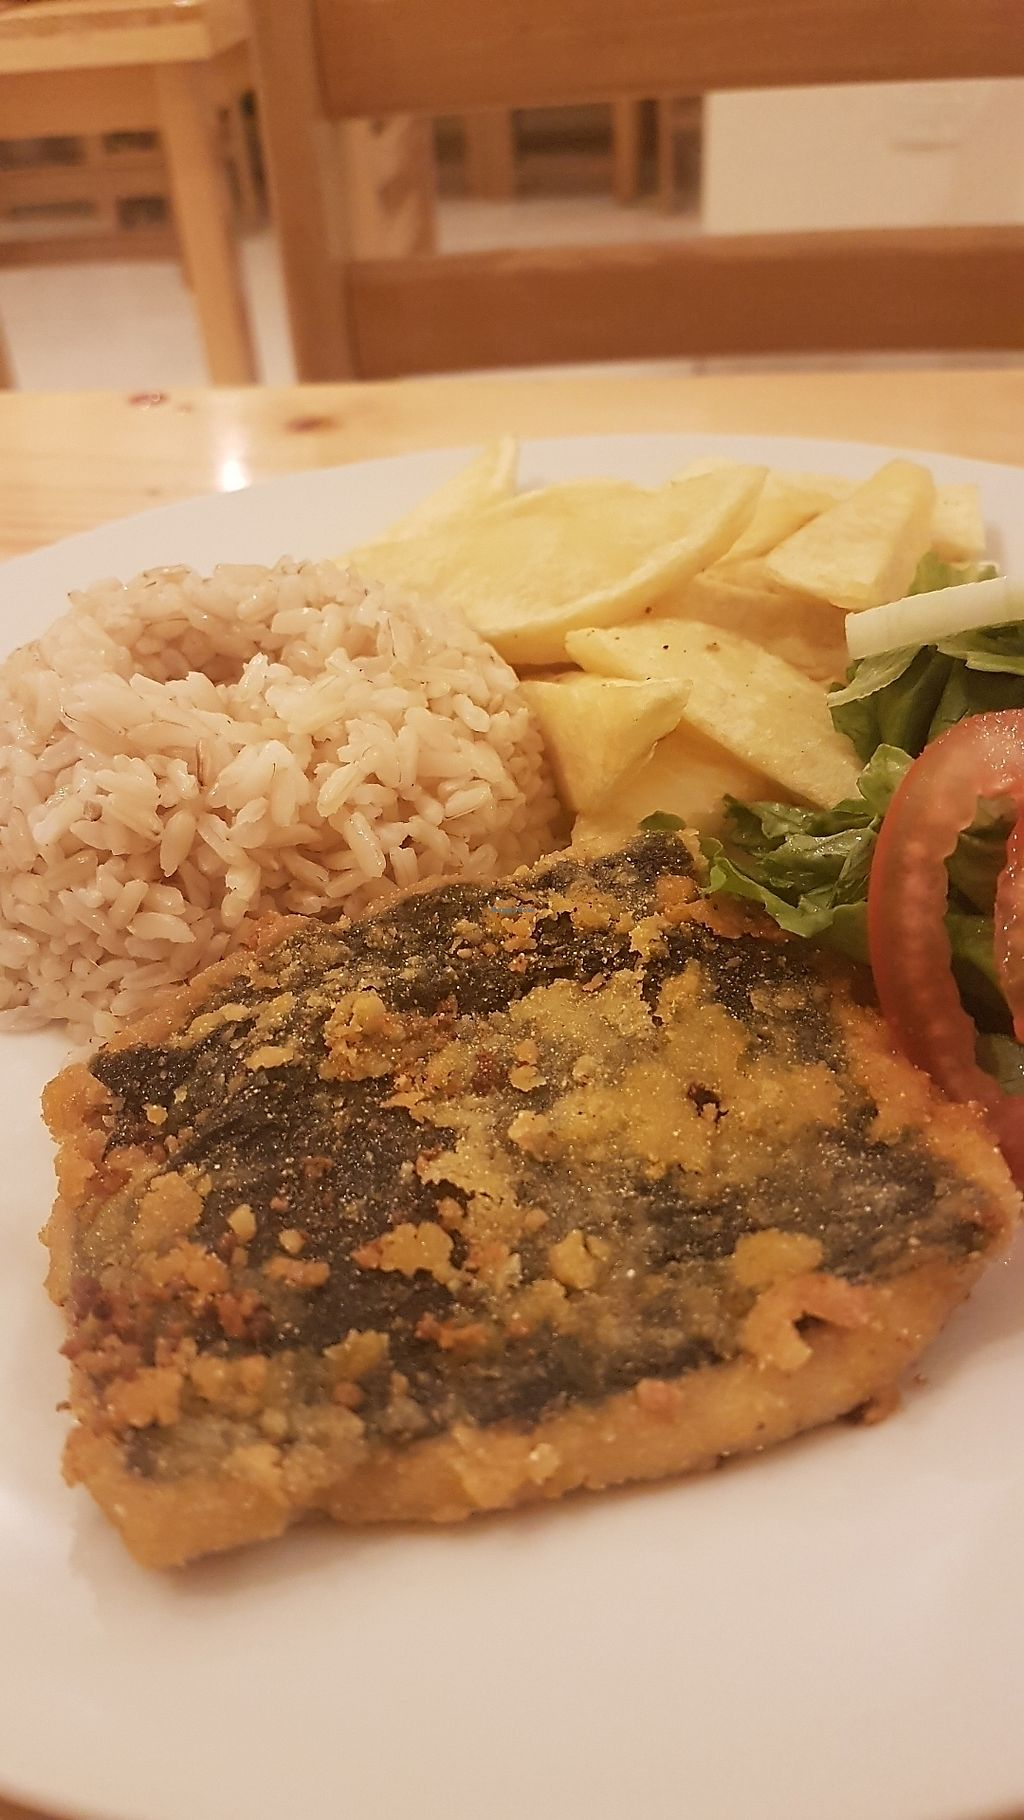 """Photo of Abdiel Vegan  by <a href=""""/members/profile/unabashed"""">unabashed</a> <br/>Main course--vegan fish, rice, salad, and potatoes  <br/> August 29, 2017  - <a href='/contact/abuse/image/91668/298735'>Report</a>"""